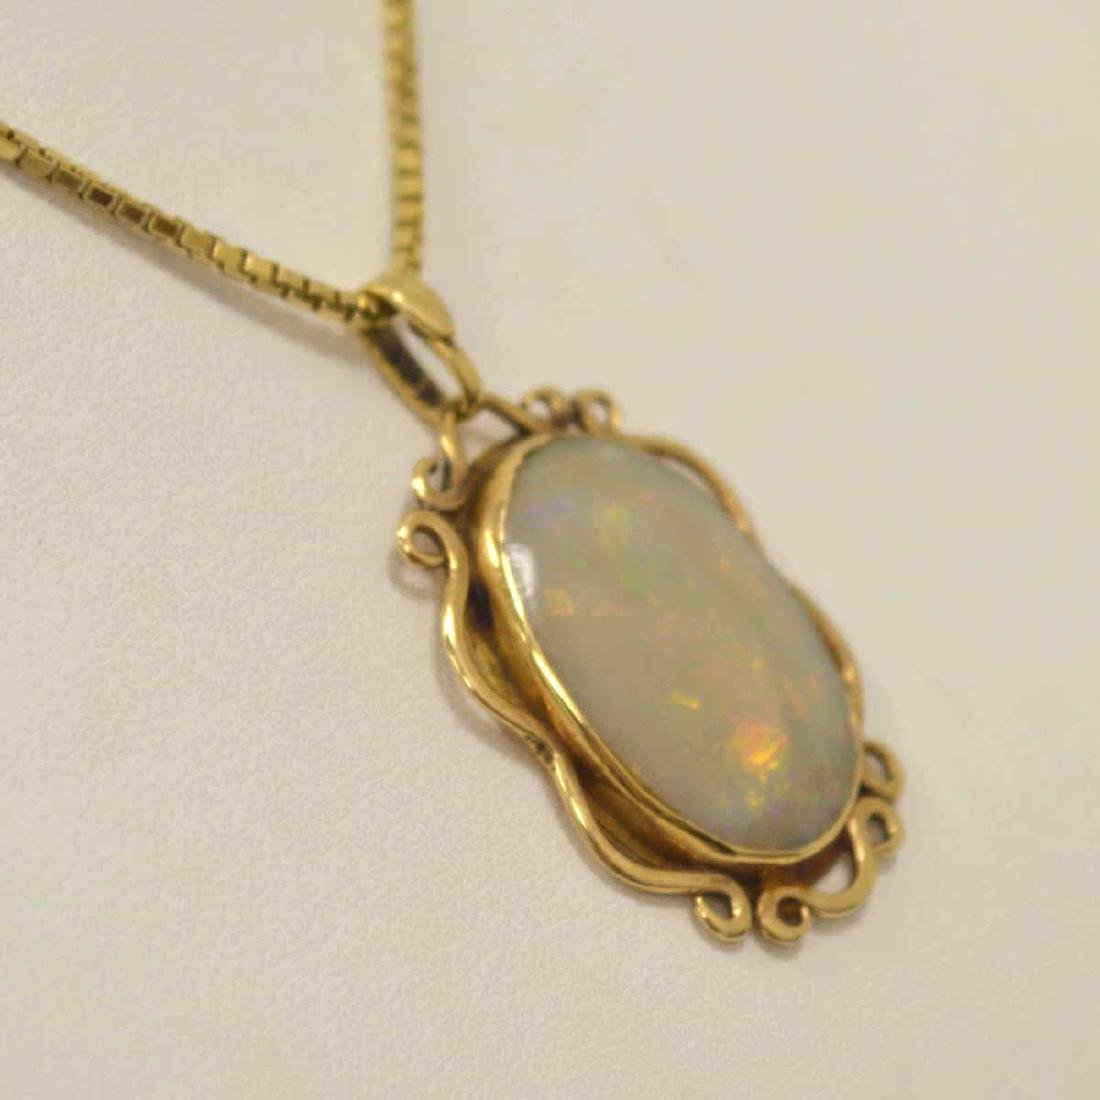 14kt yellow gold opal necklace - 4